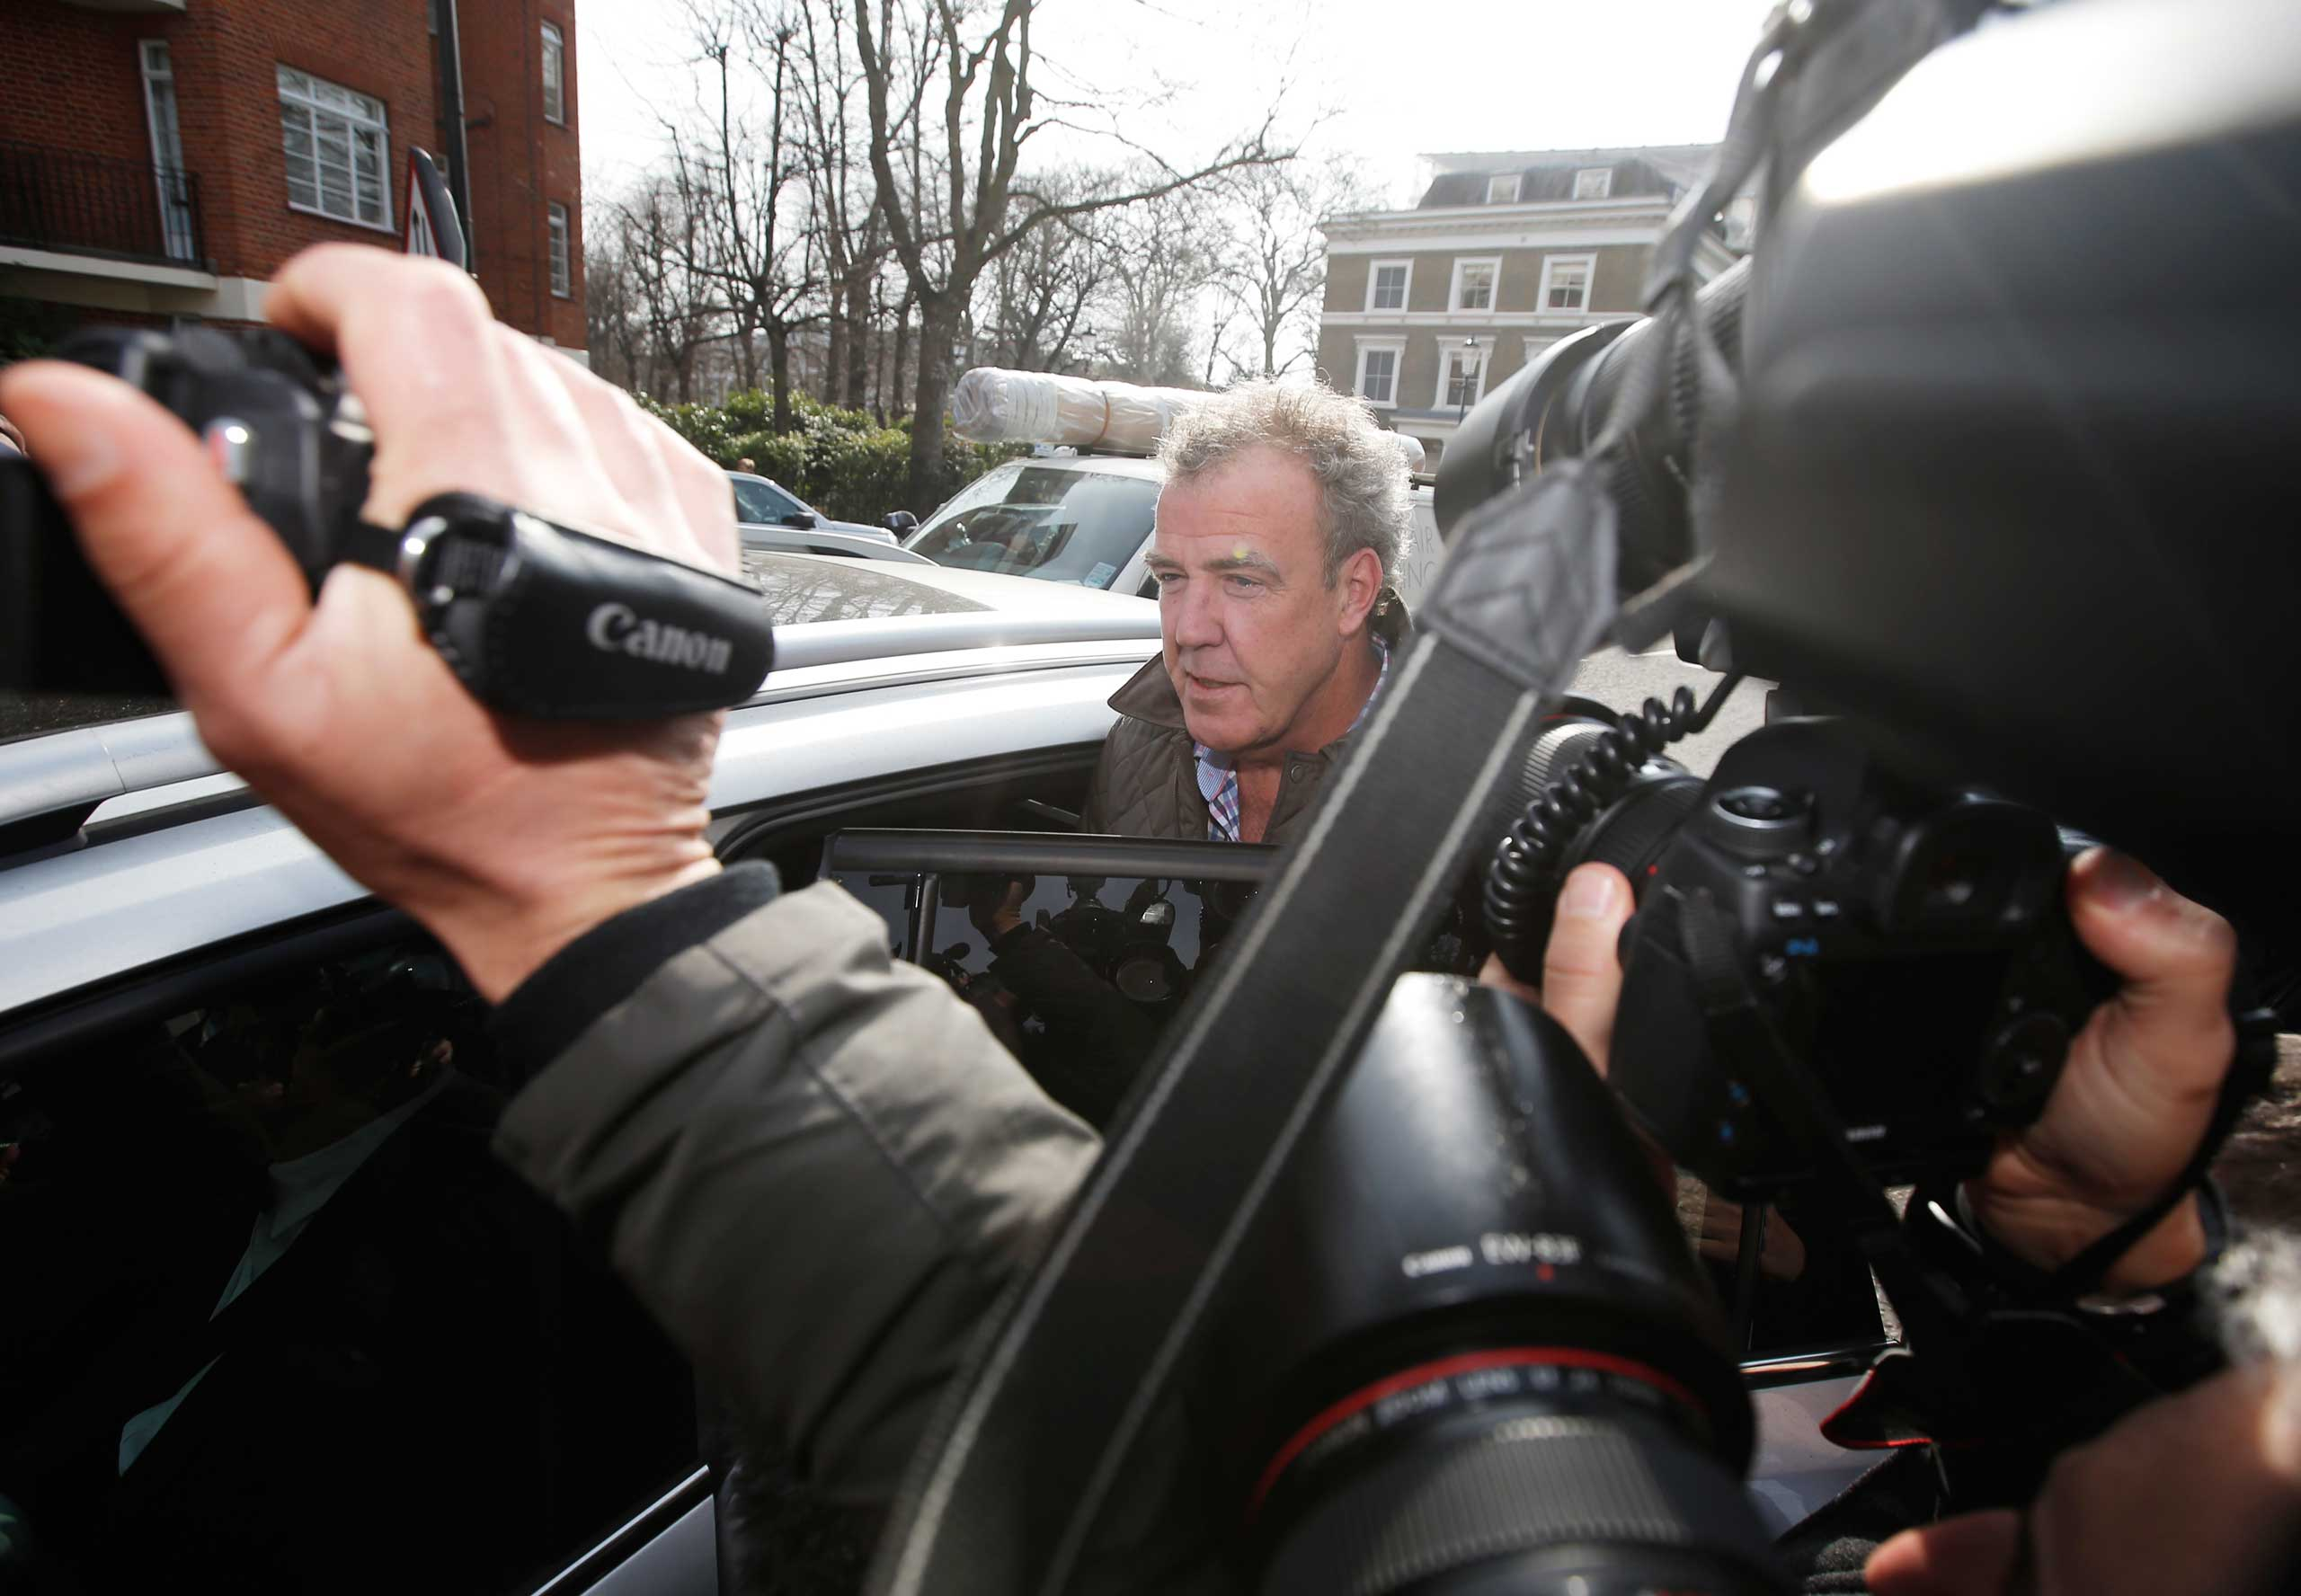 Jeremy Clarkson is mobbed by journalists in London, March 11, 2015.